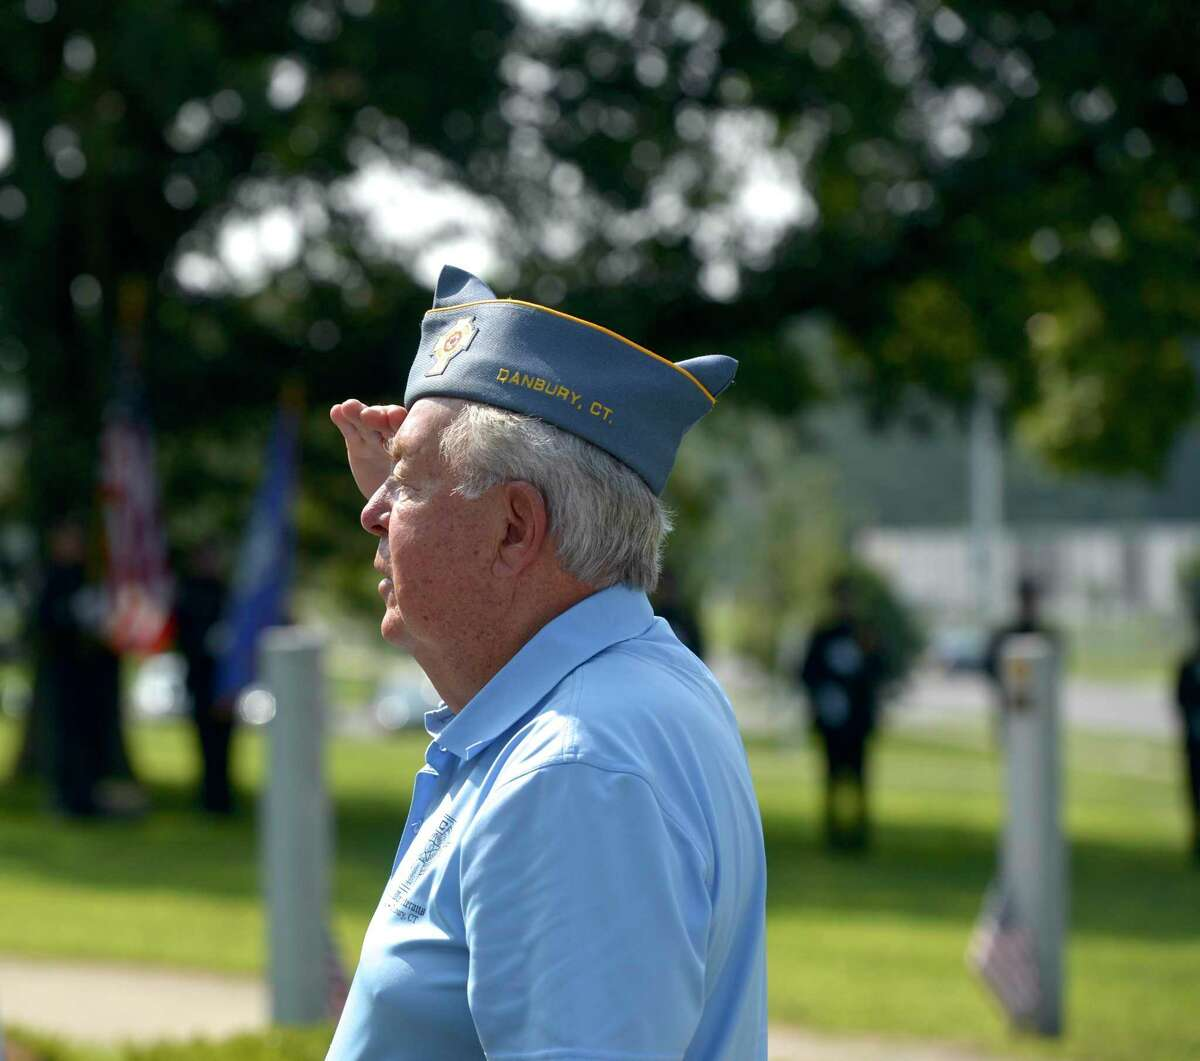 Veteran Al Mead, of Danbury, salutes during the singing of the National Anthem at the Greater Area Korean War Veterans Assoc. ceremony to mark the 68th anniversary of the end of the Korean War. Korean War Memorial in Rogers Park, Tuesday, July 27, 2021, in Danbury, Conn.